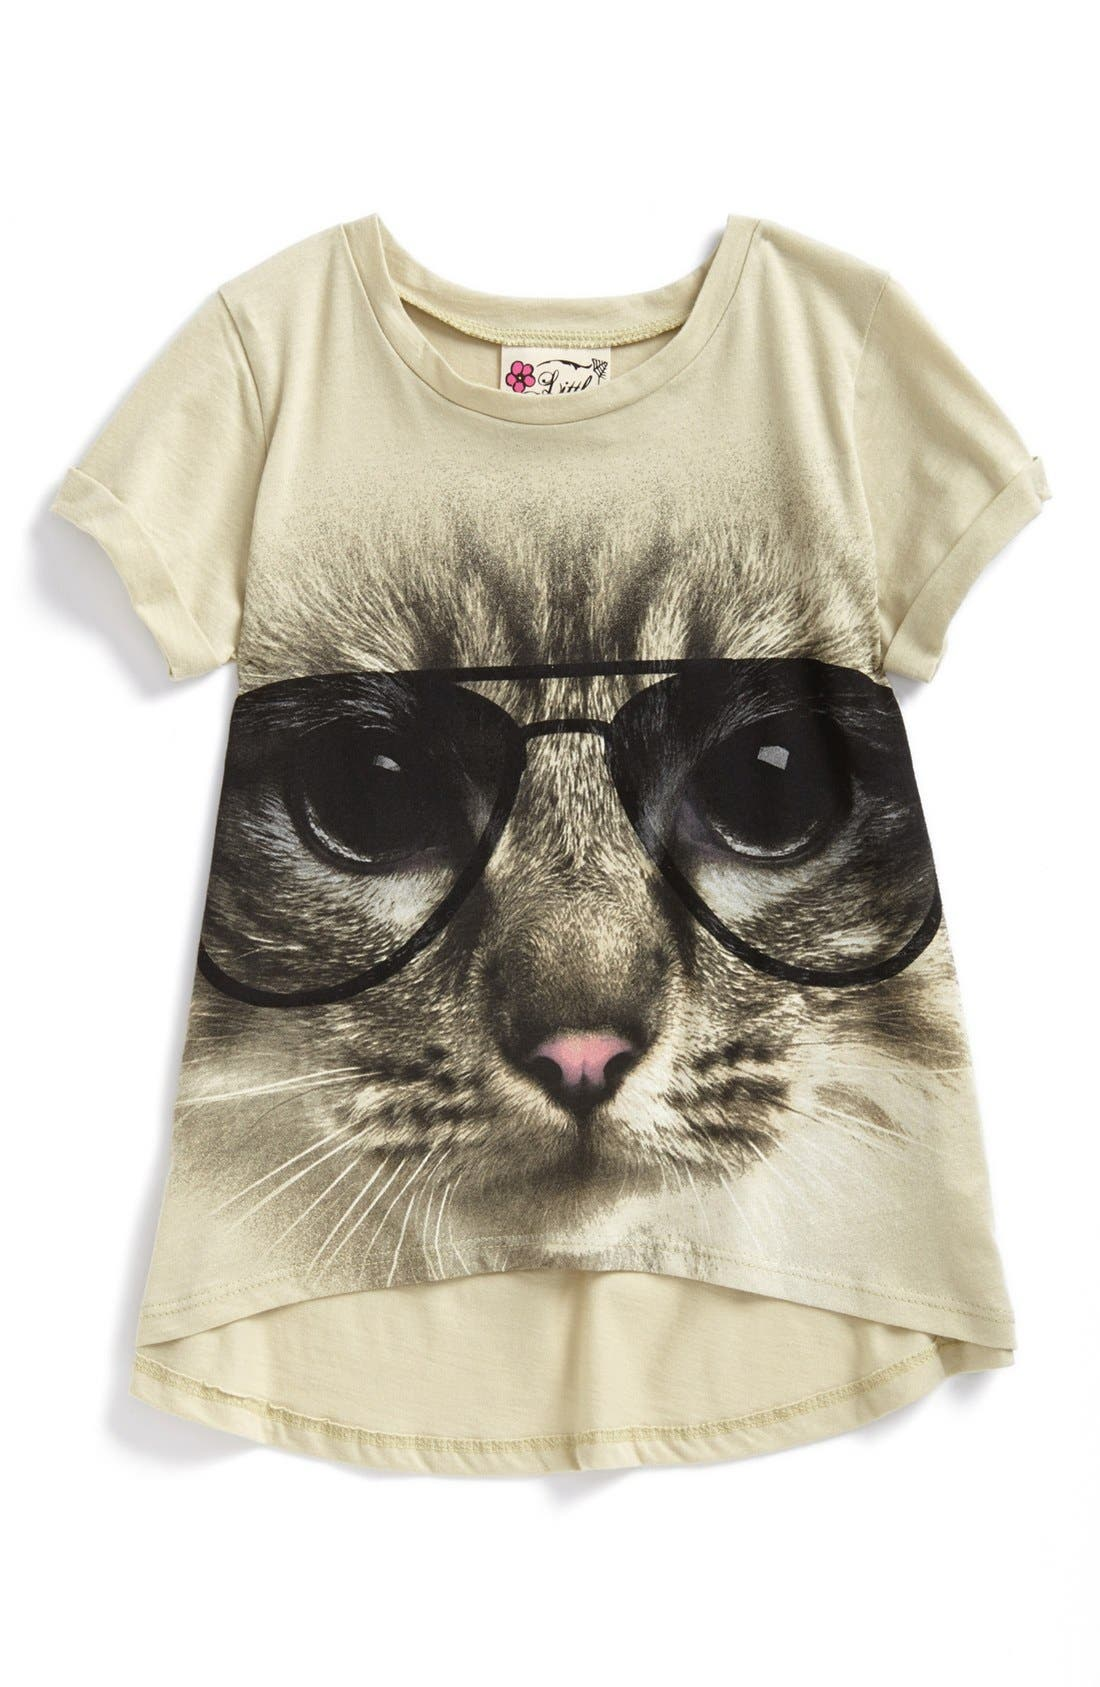 Alternate Image 1 Selected - Miken Clothing 'Kitty' High/Low Tee (Little Girls)